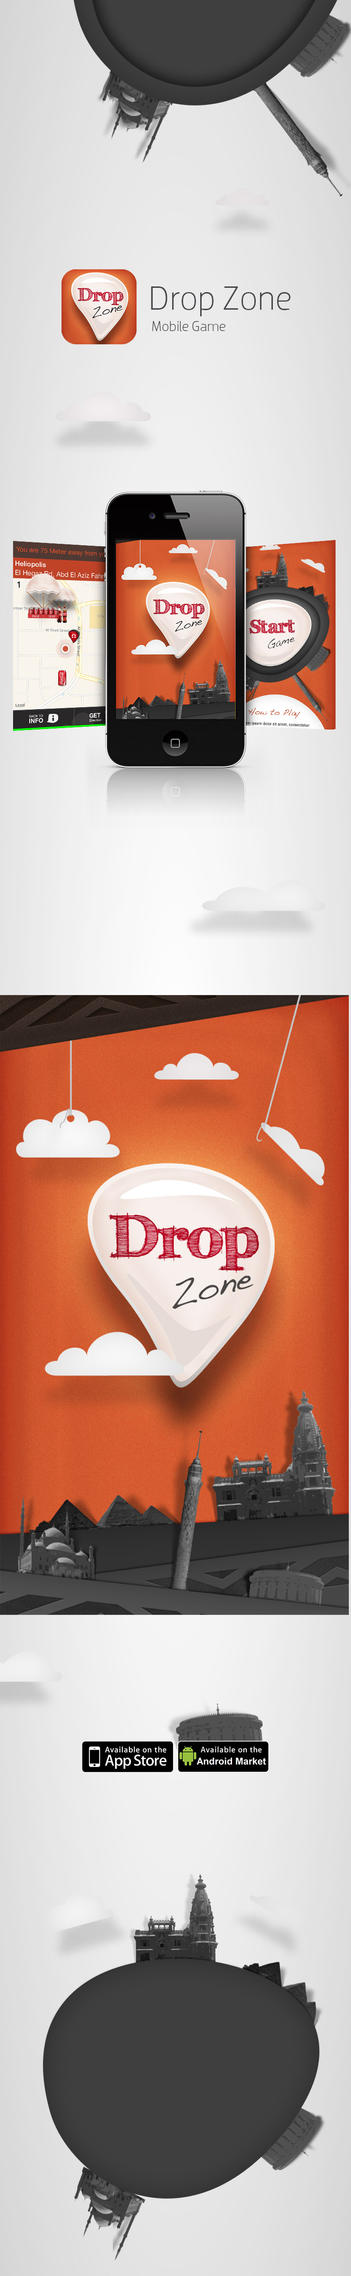 Drop Game for iPhone and Android by ahmedelzahra